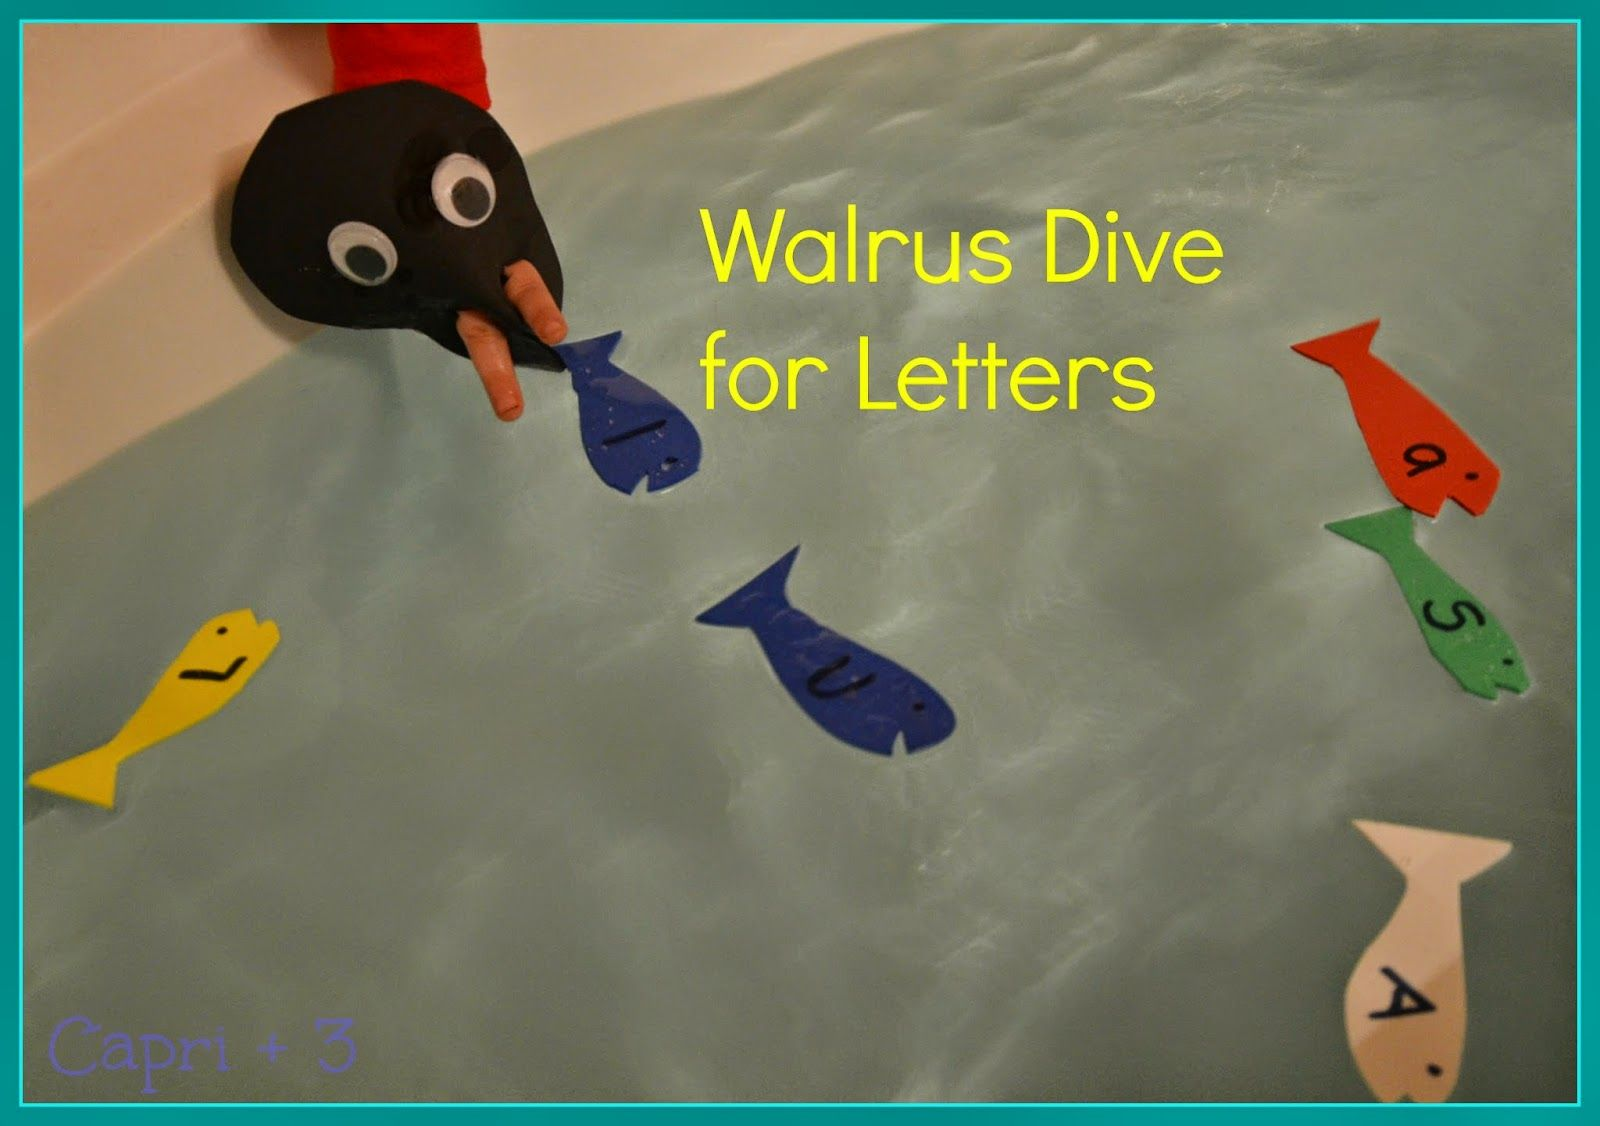 Walrus Dive For Letters Make An Easy Puppet And Use It For A Literacy Activity